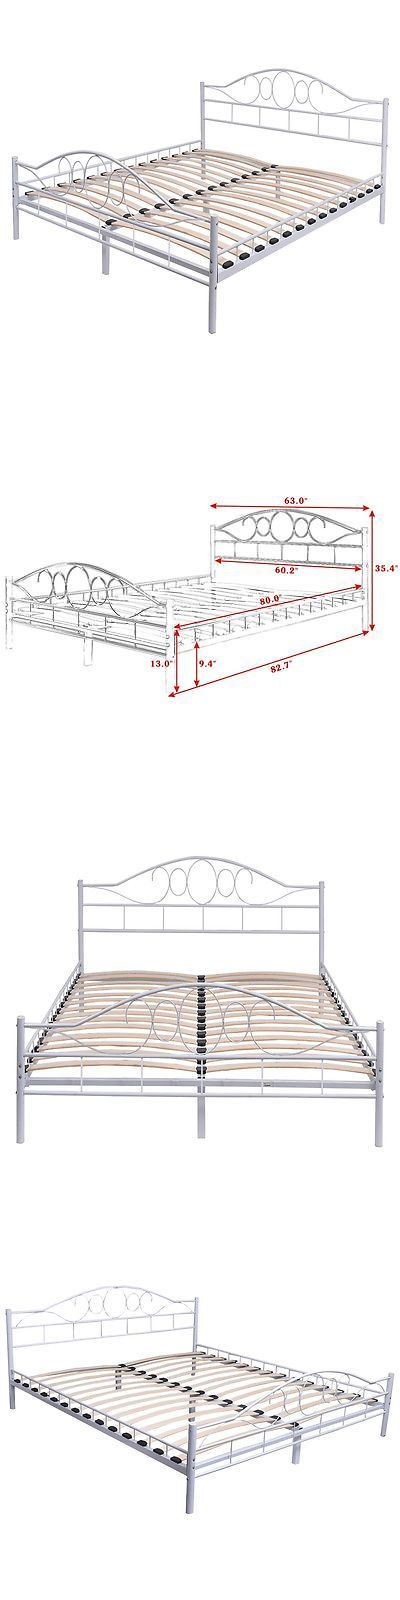 Beds and Bed Frames 175758: Queen Size Wood Slats Steel Bed Frame Platform Headboard Footboard Bedroom White -> BUY IT NOW ONLY: $119.99 on eBay!